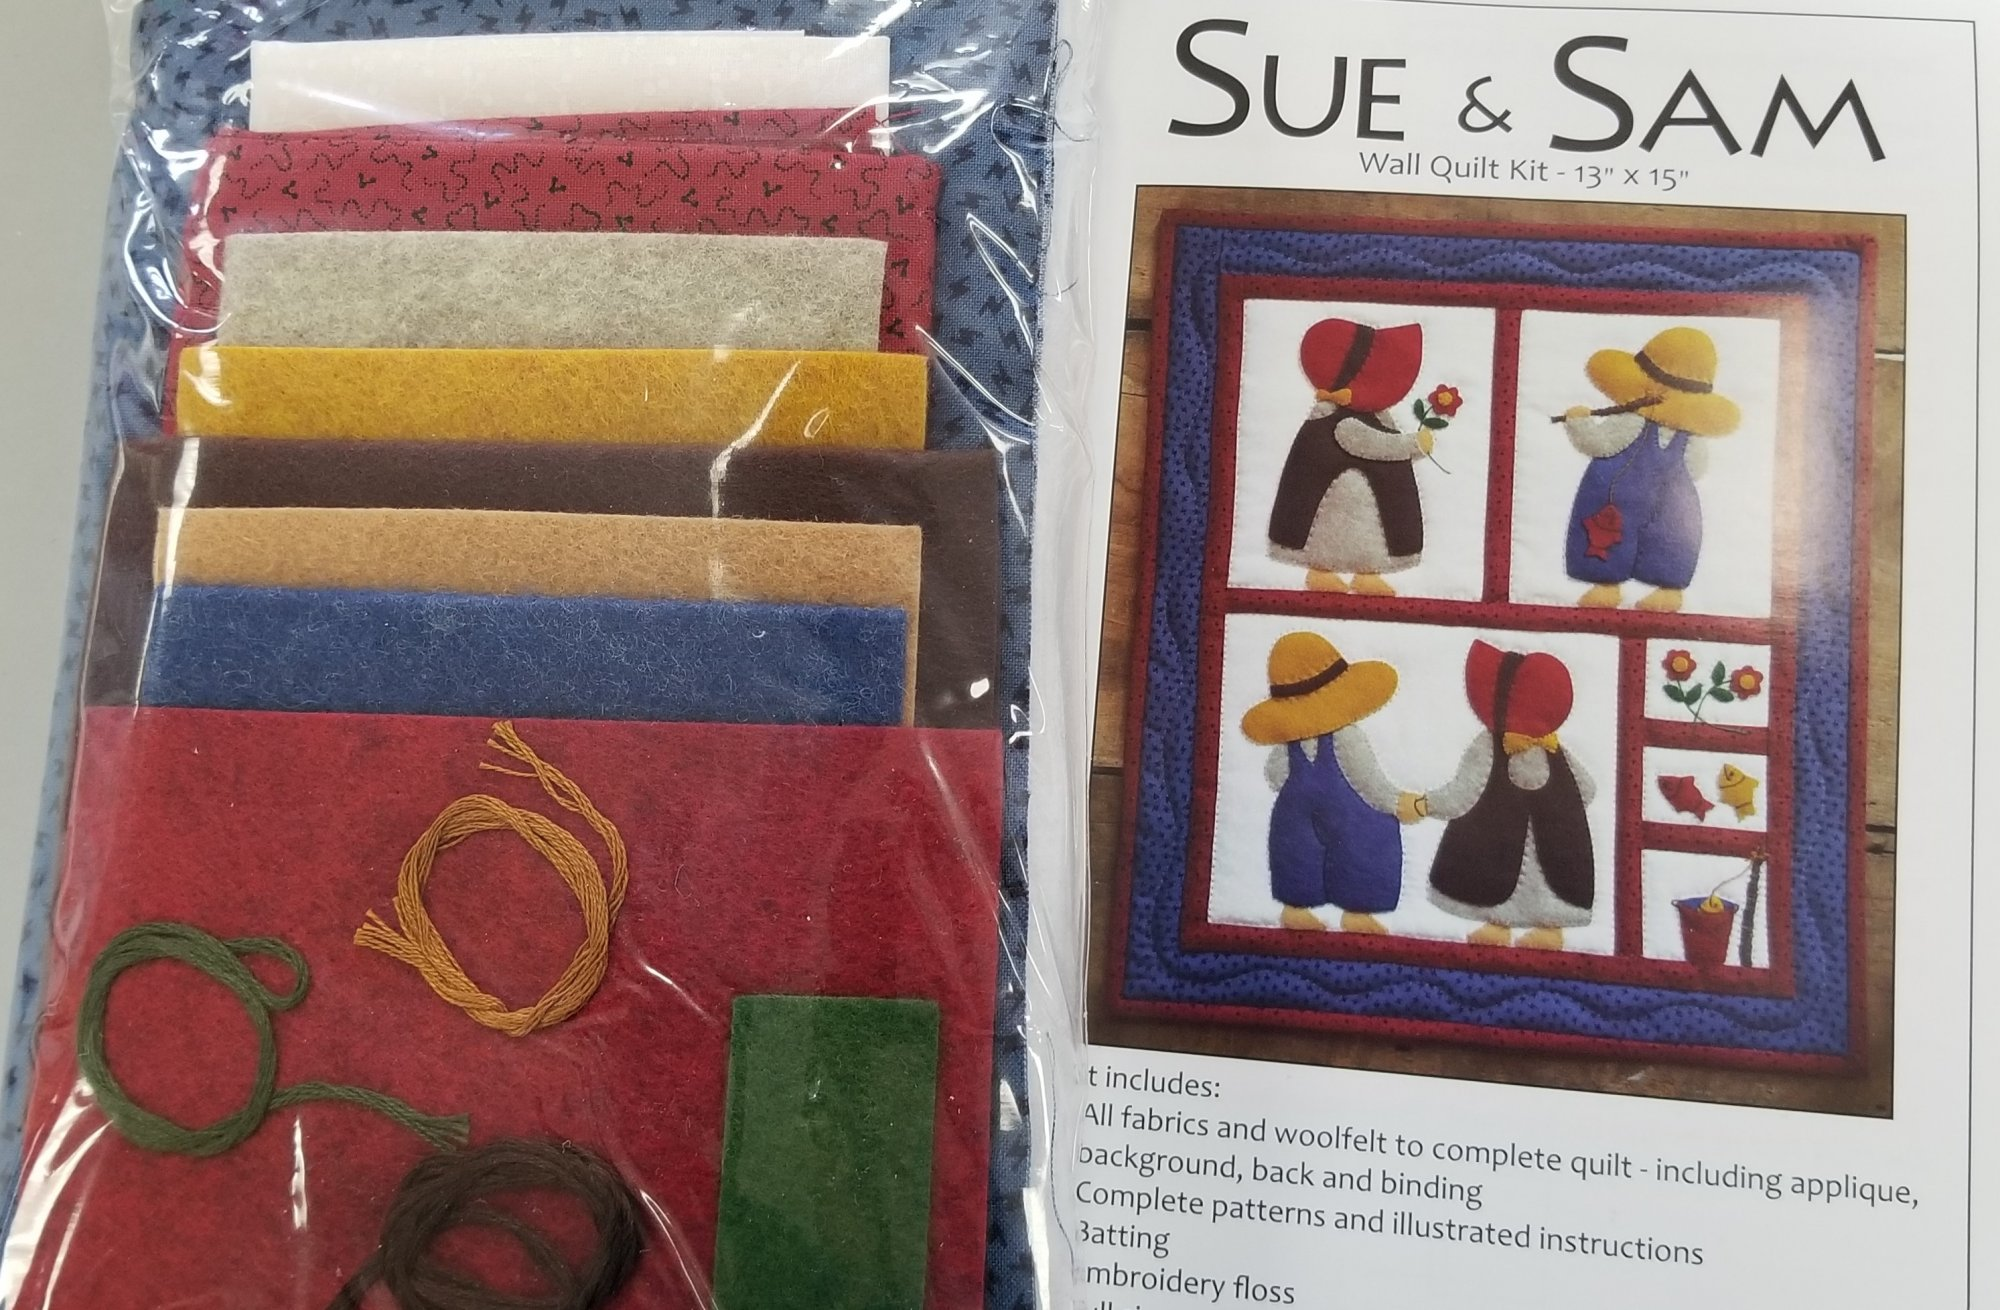 Sue & Sam Wall Quilt Kit